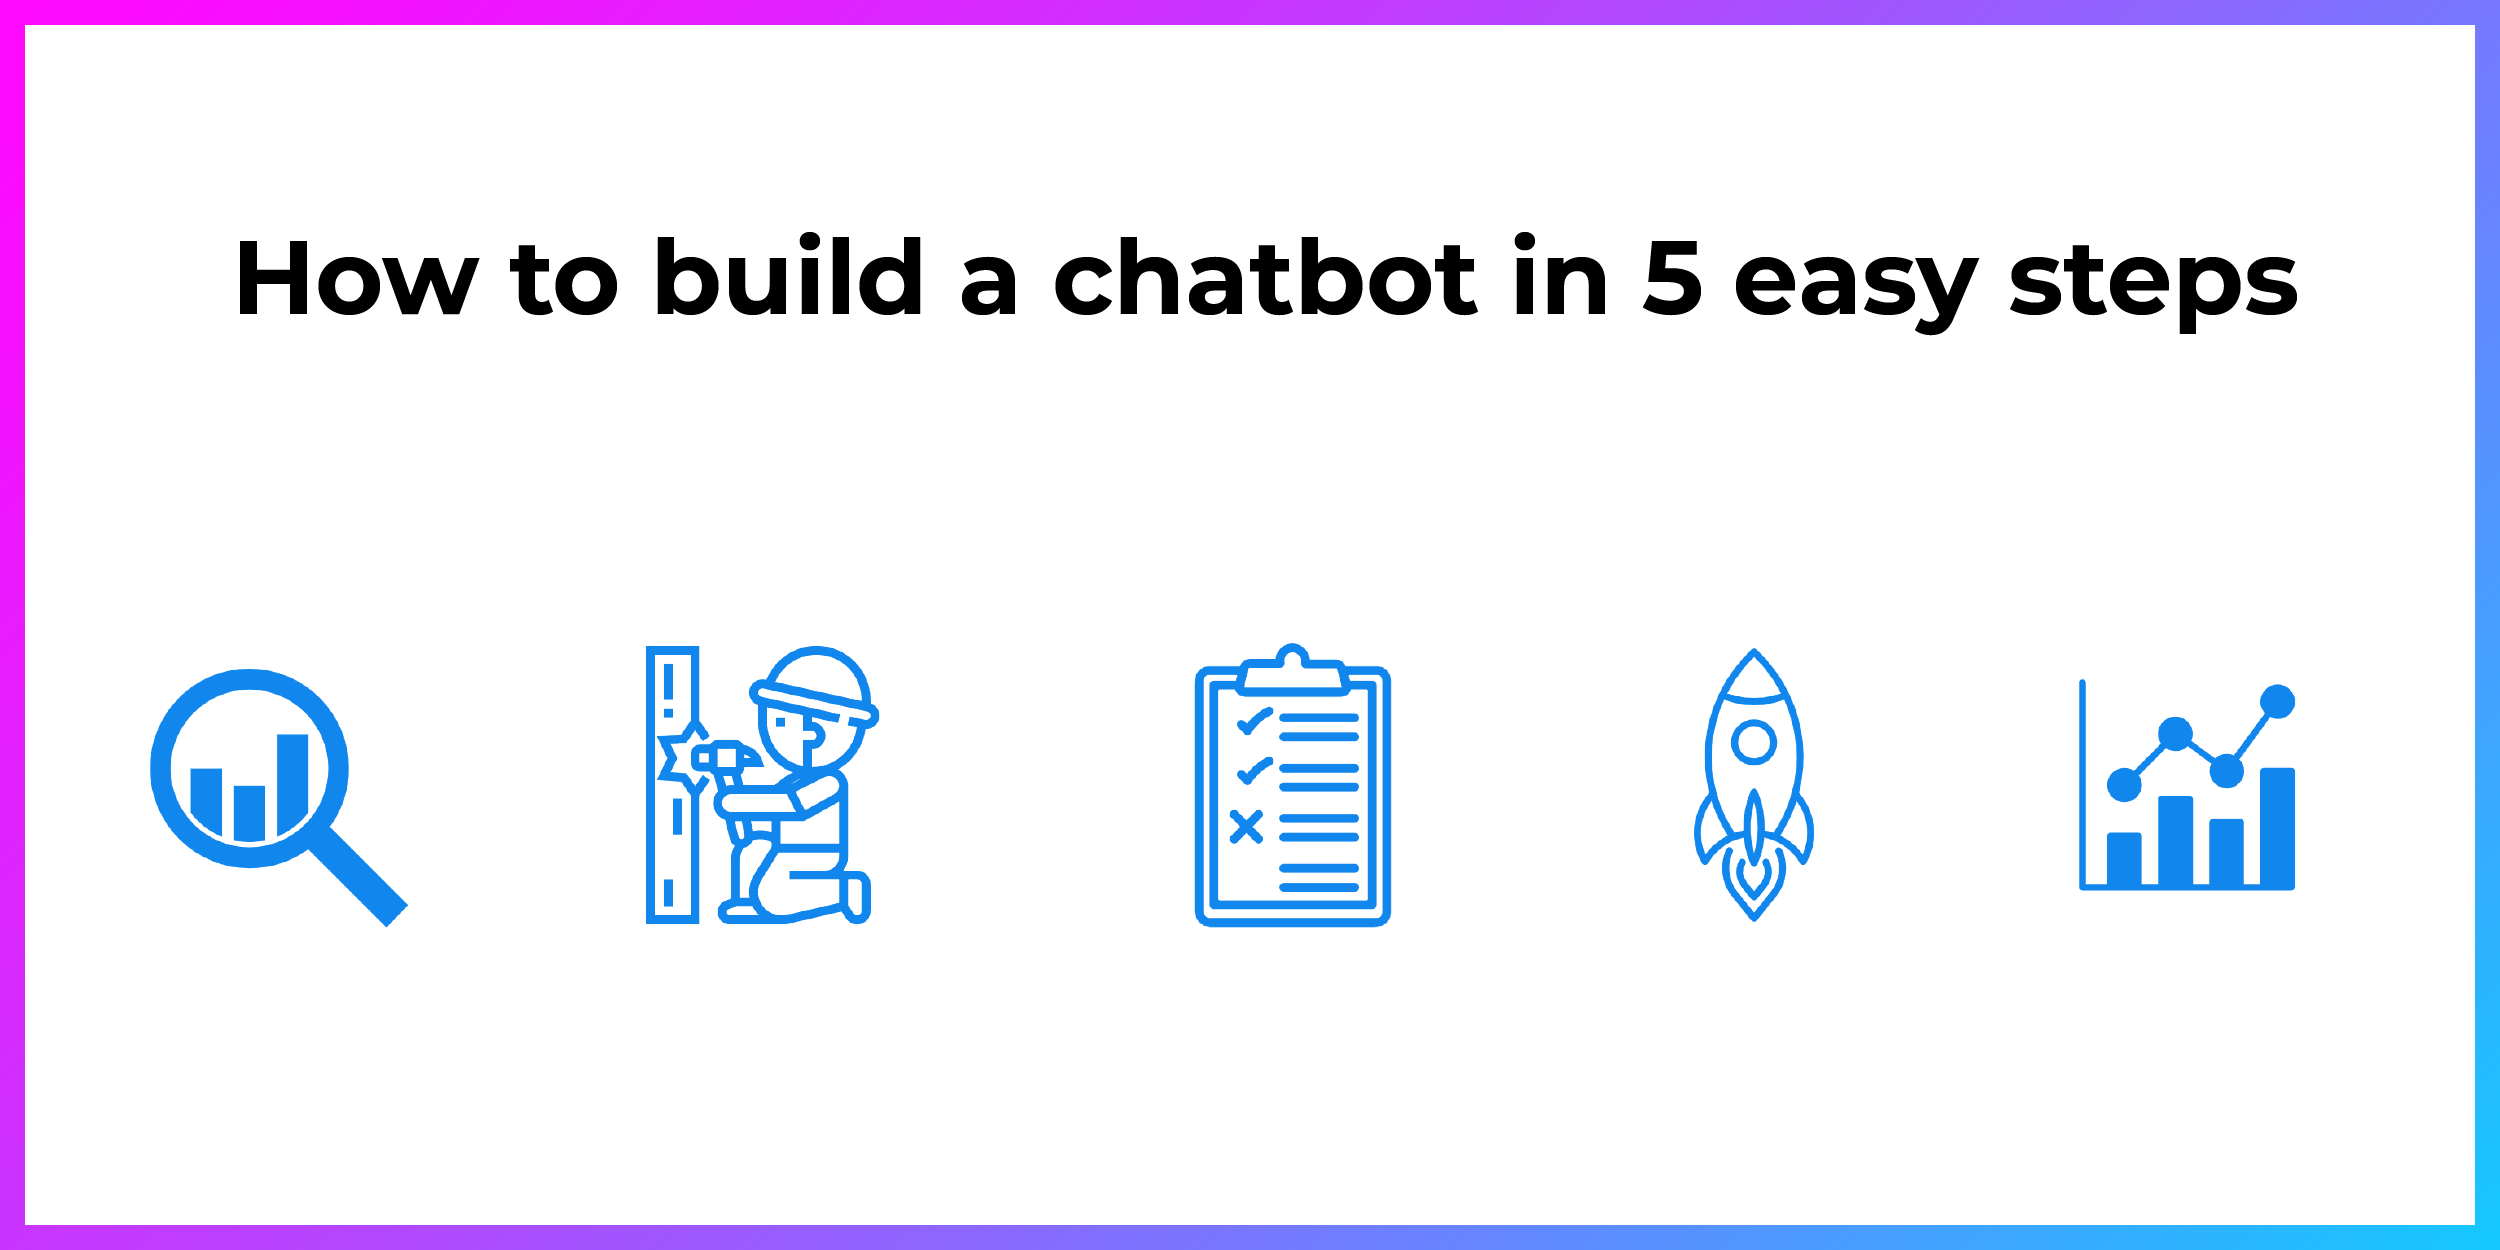 How to build a chatbot in 5 easy steps